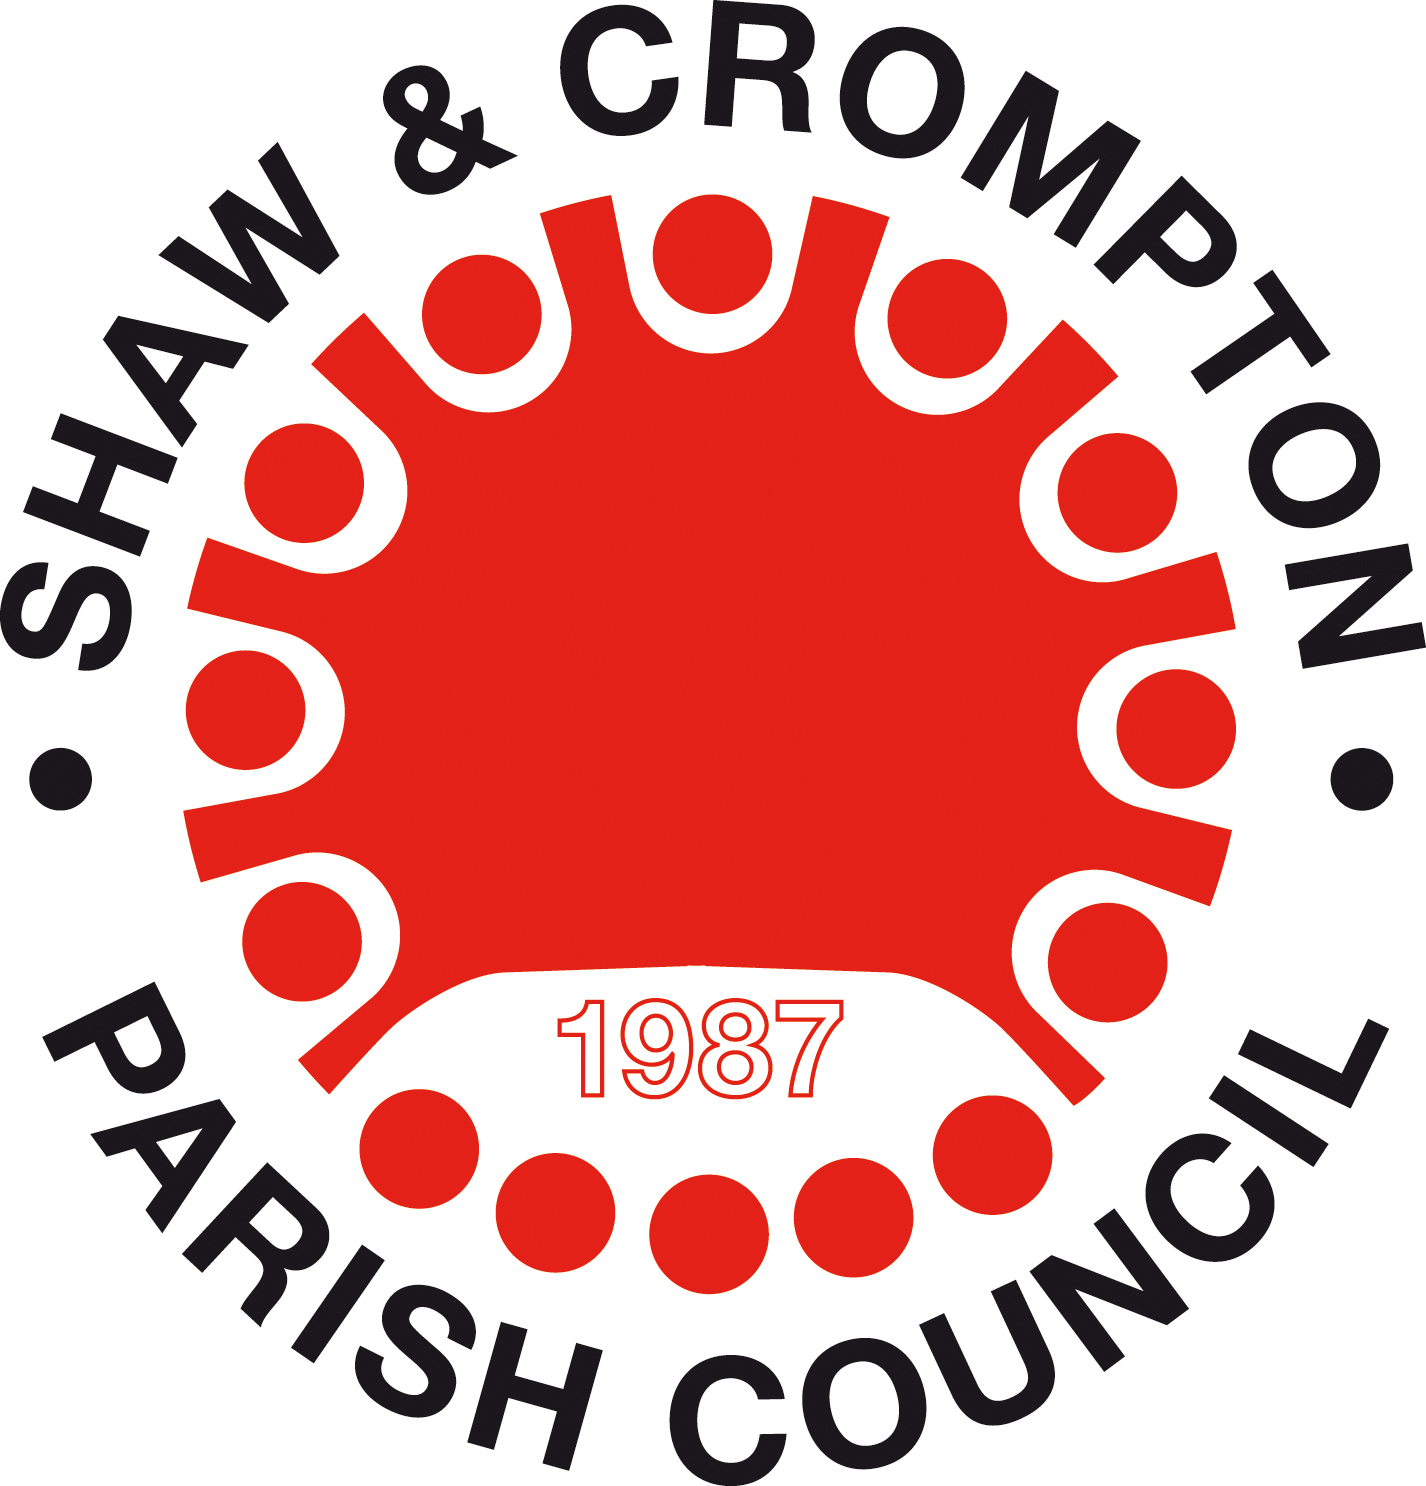 Shaw and Crompton logo red and blk